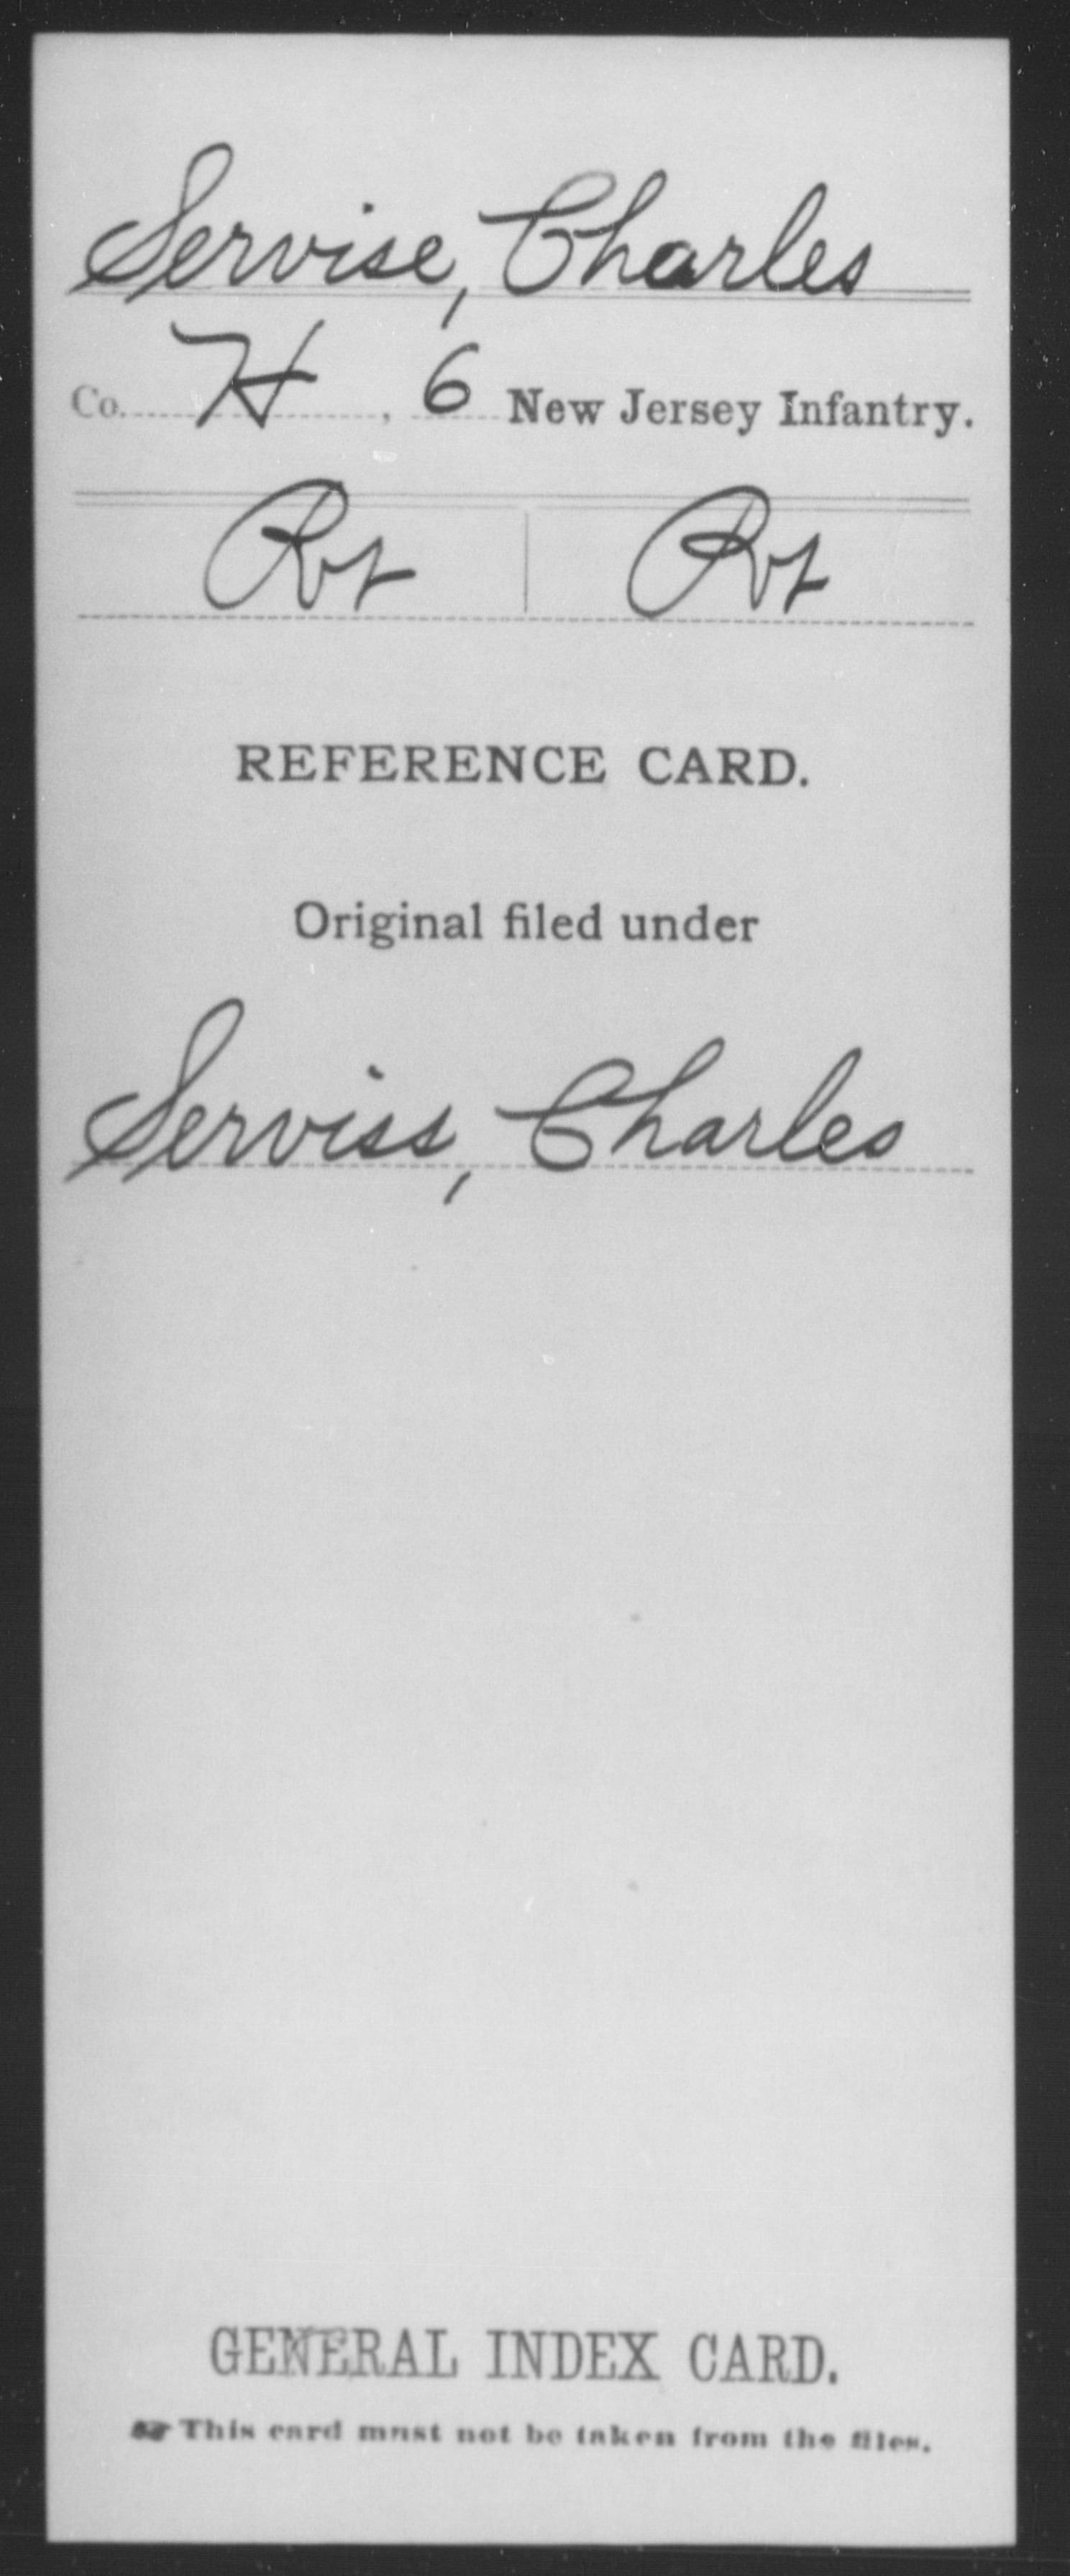 [New Jersey] Servise, Charles - 6th Infantry, Company H